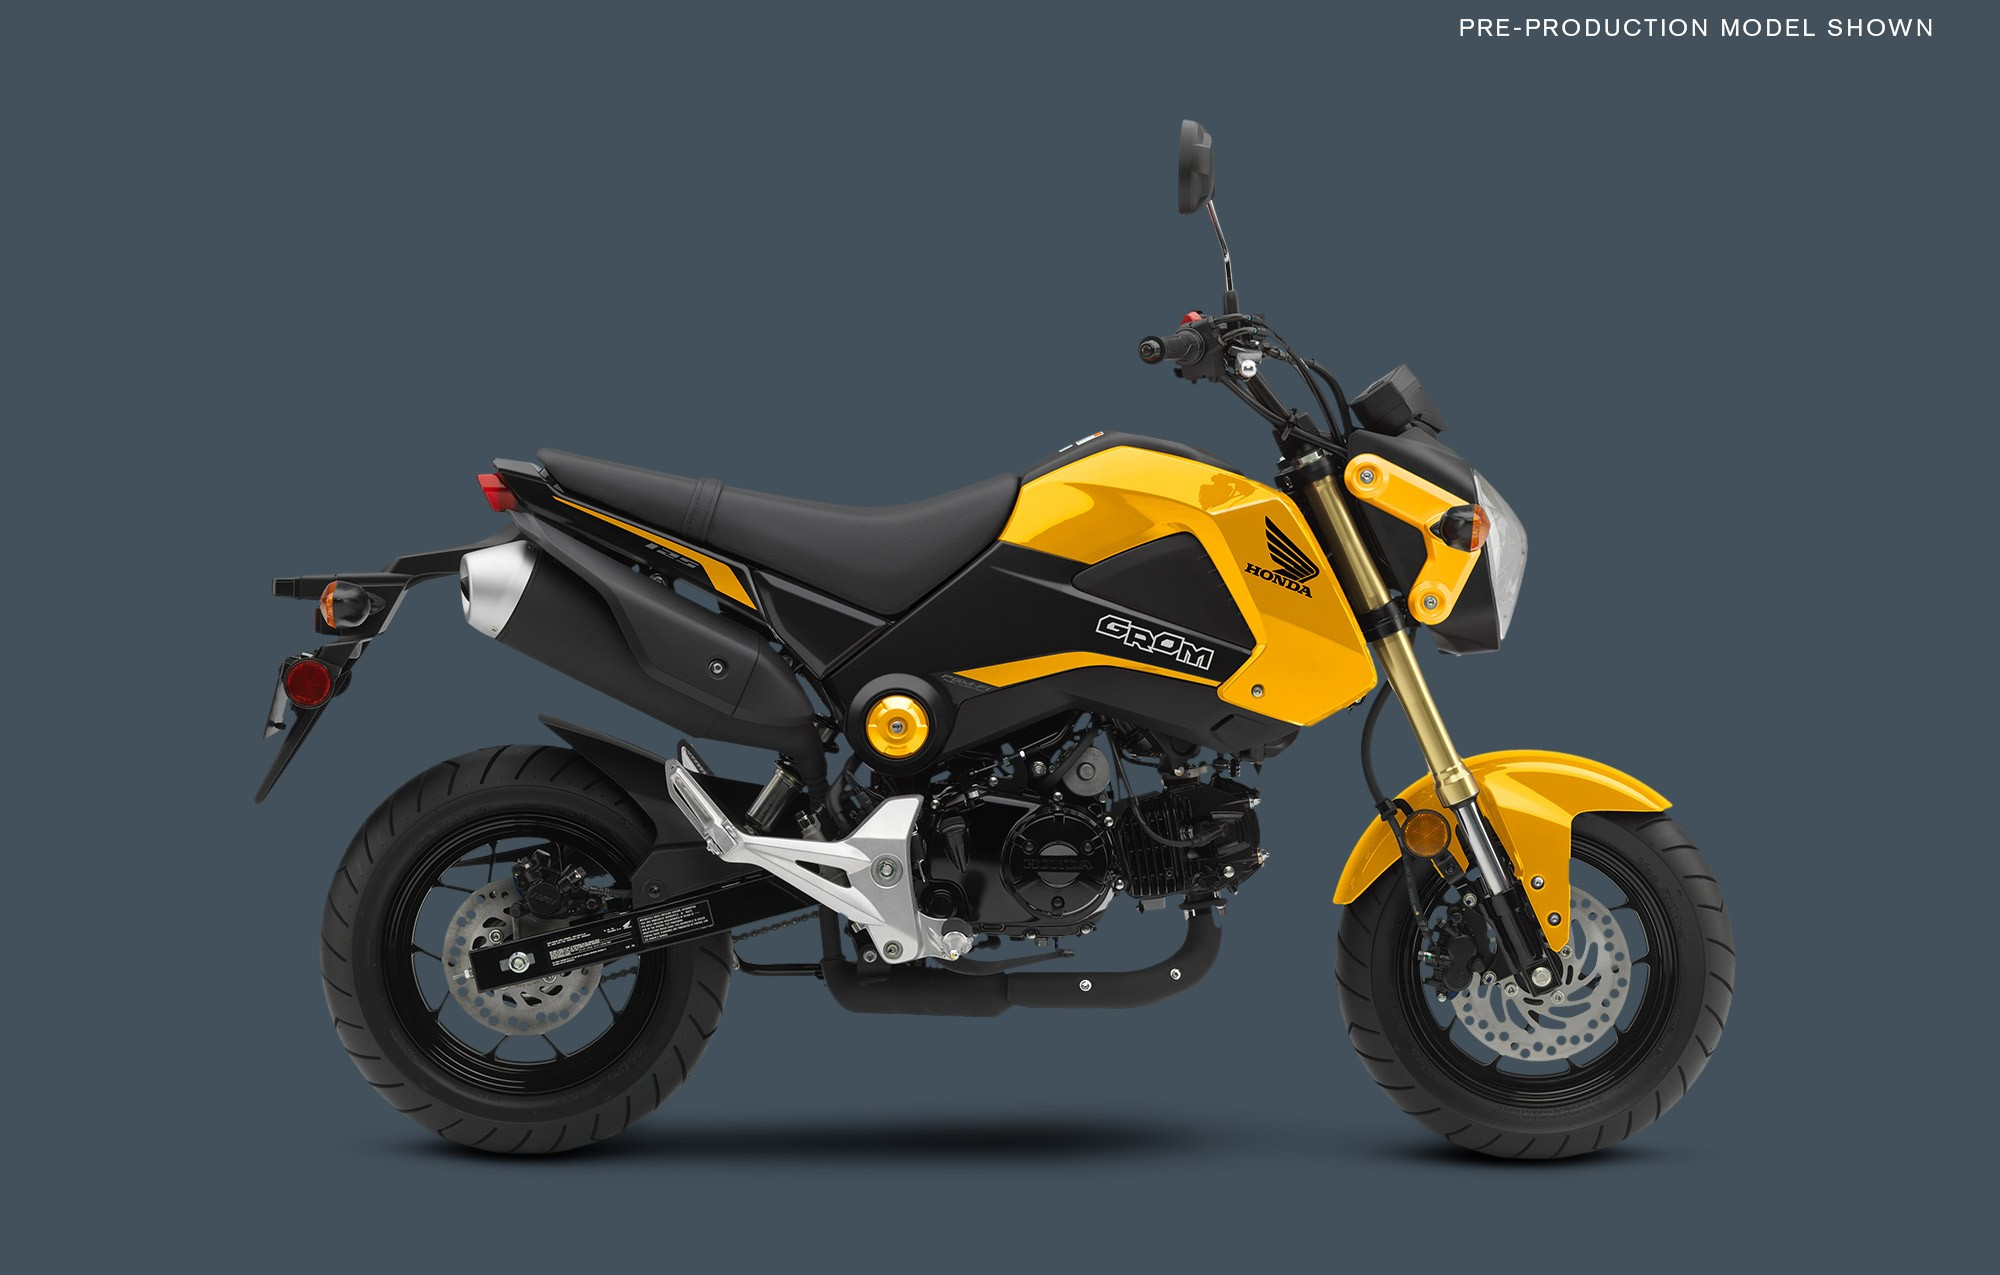 2015 Honda Grom In Yellow Trim